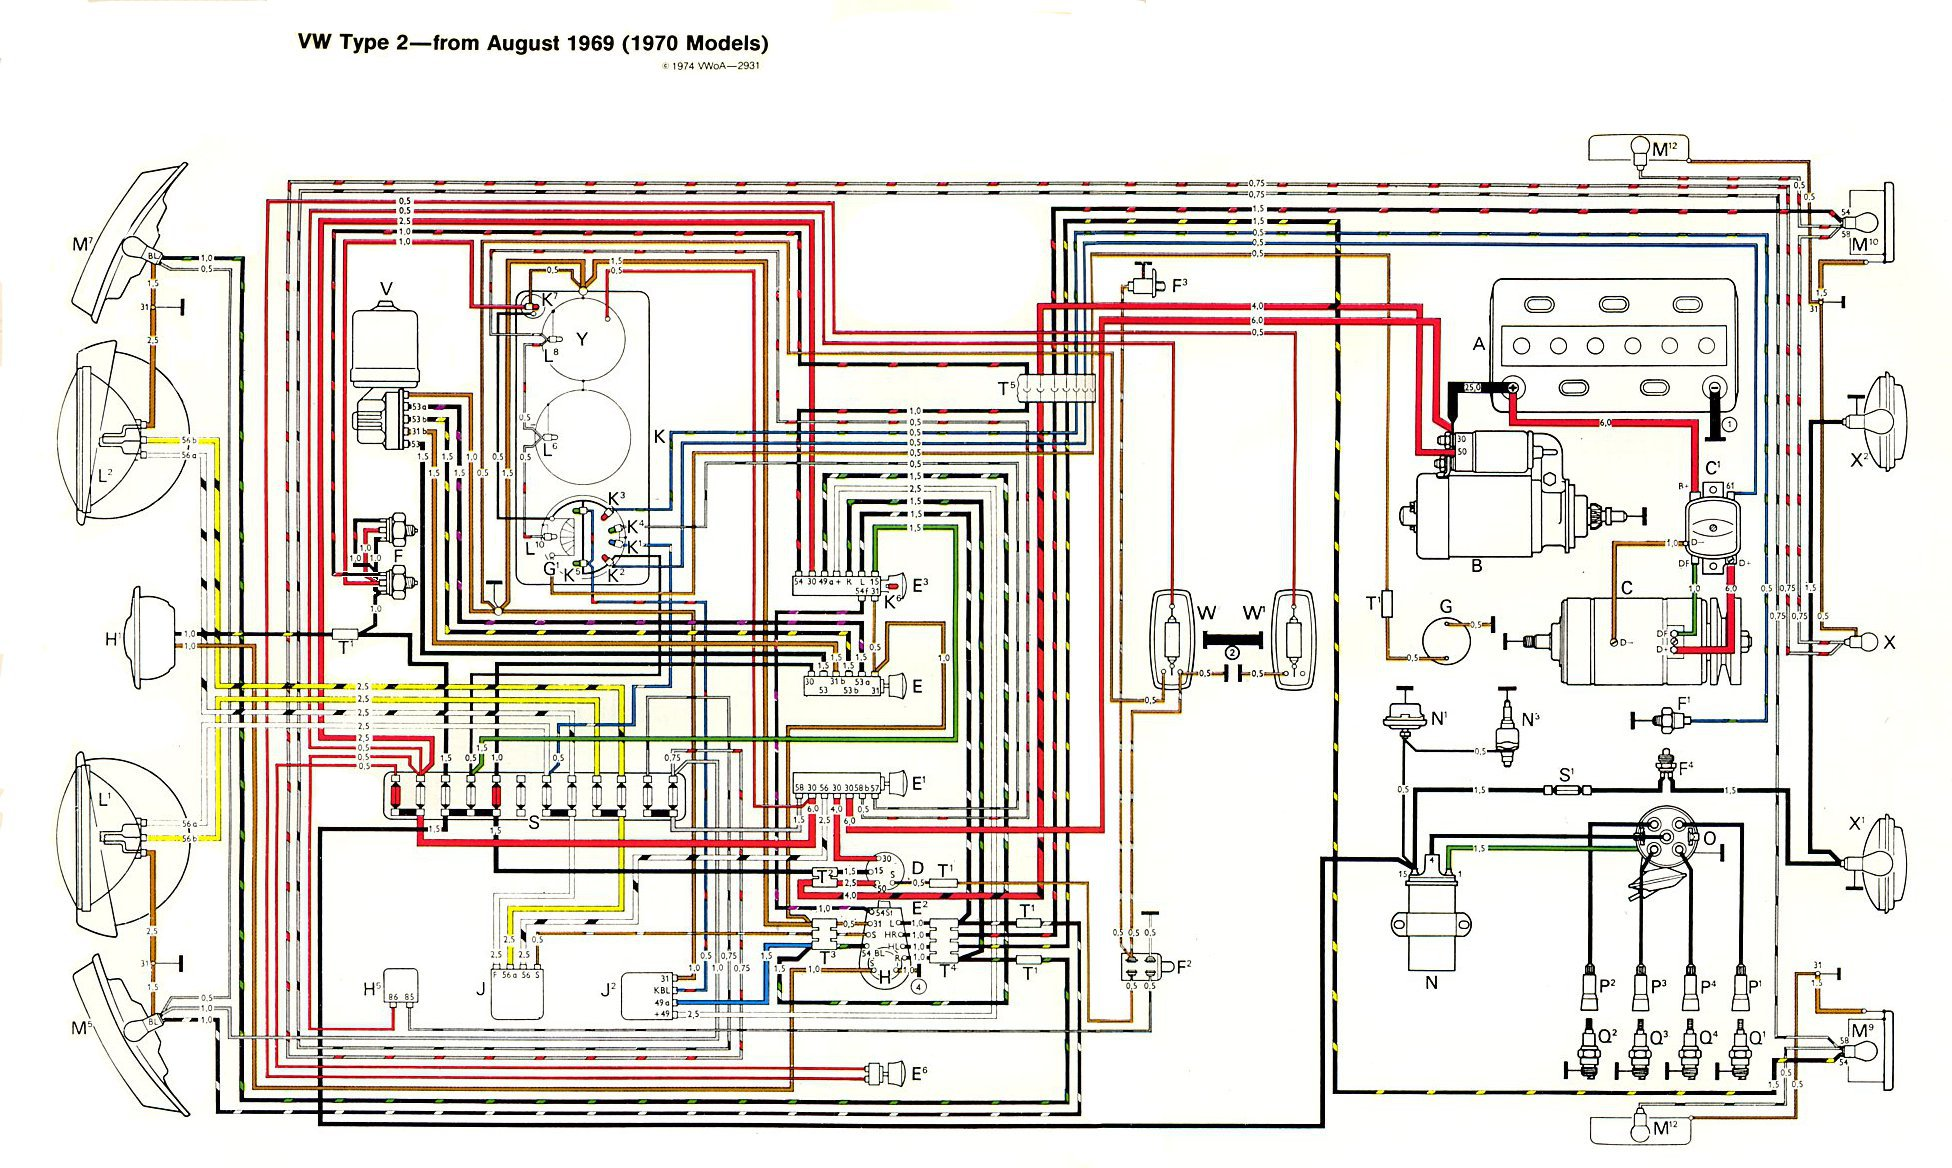 baybus_70 jeepster wiring diagram jeepster service manual pdf \u2022 free wiring 1957 vw beetle wiring diagram at bayanpartner.co